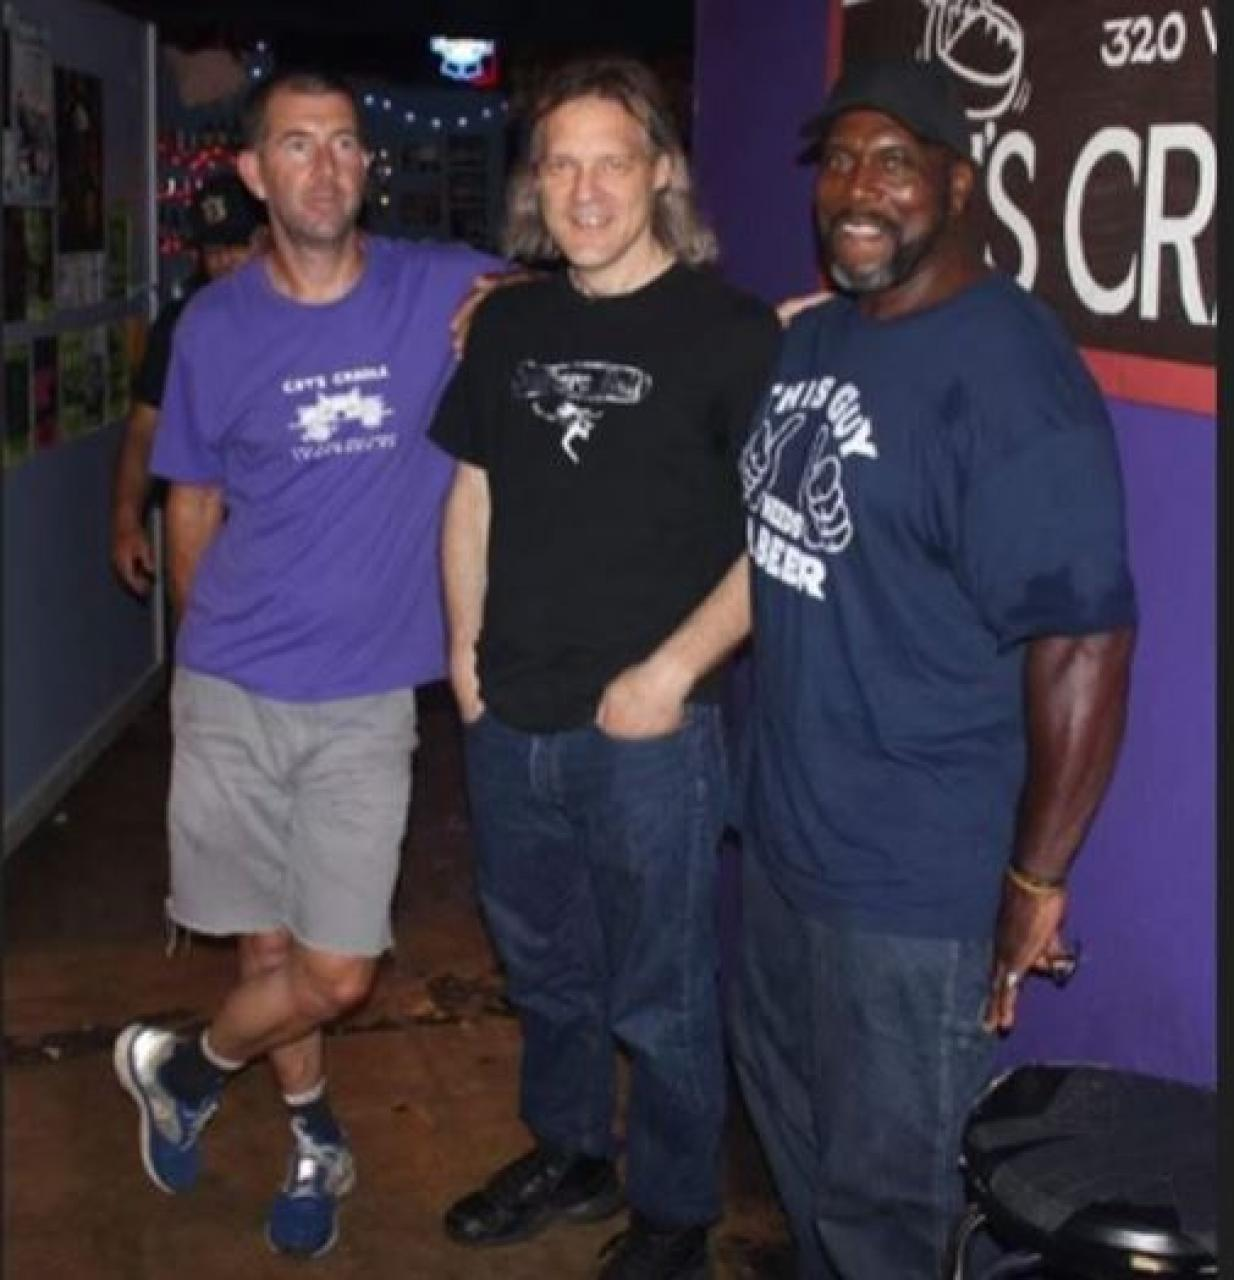 Almost 100 years of collective Cat's Cradle work experience pictured here. From left: Derek Powers (26 years), Frank Heath (34 years) and Billy Johnson (38 years). Photo courtesy of Derek Powers.